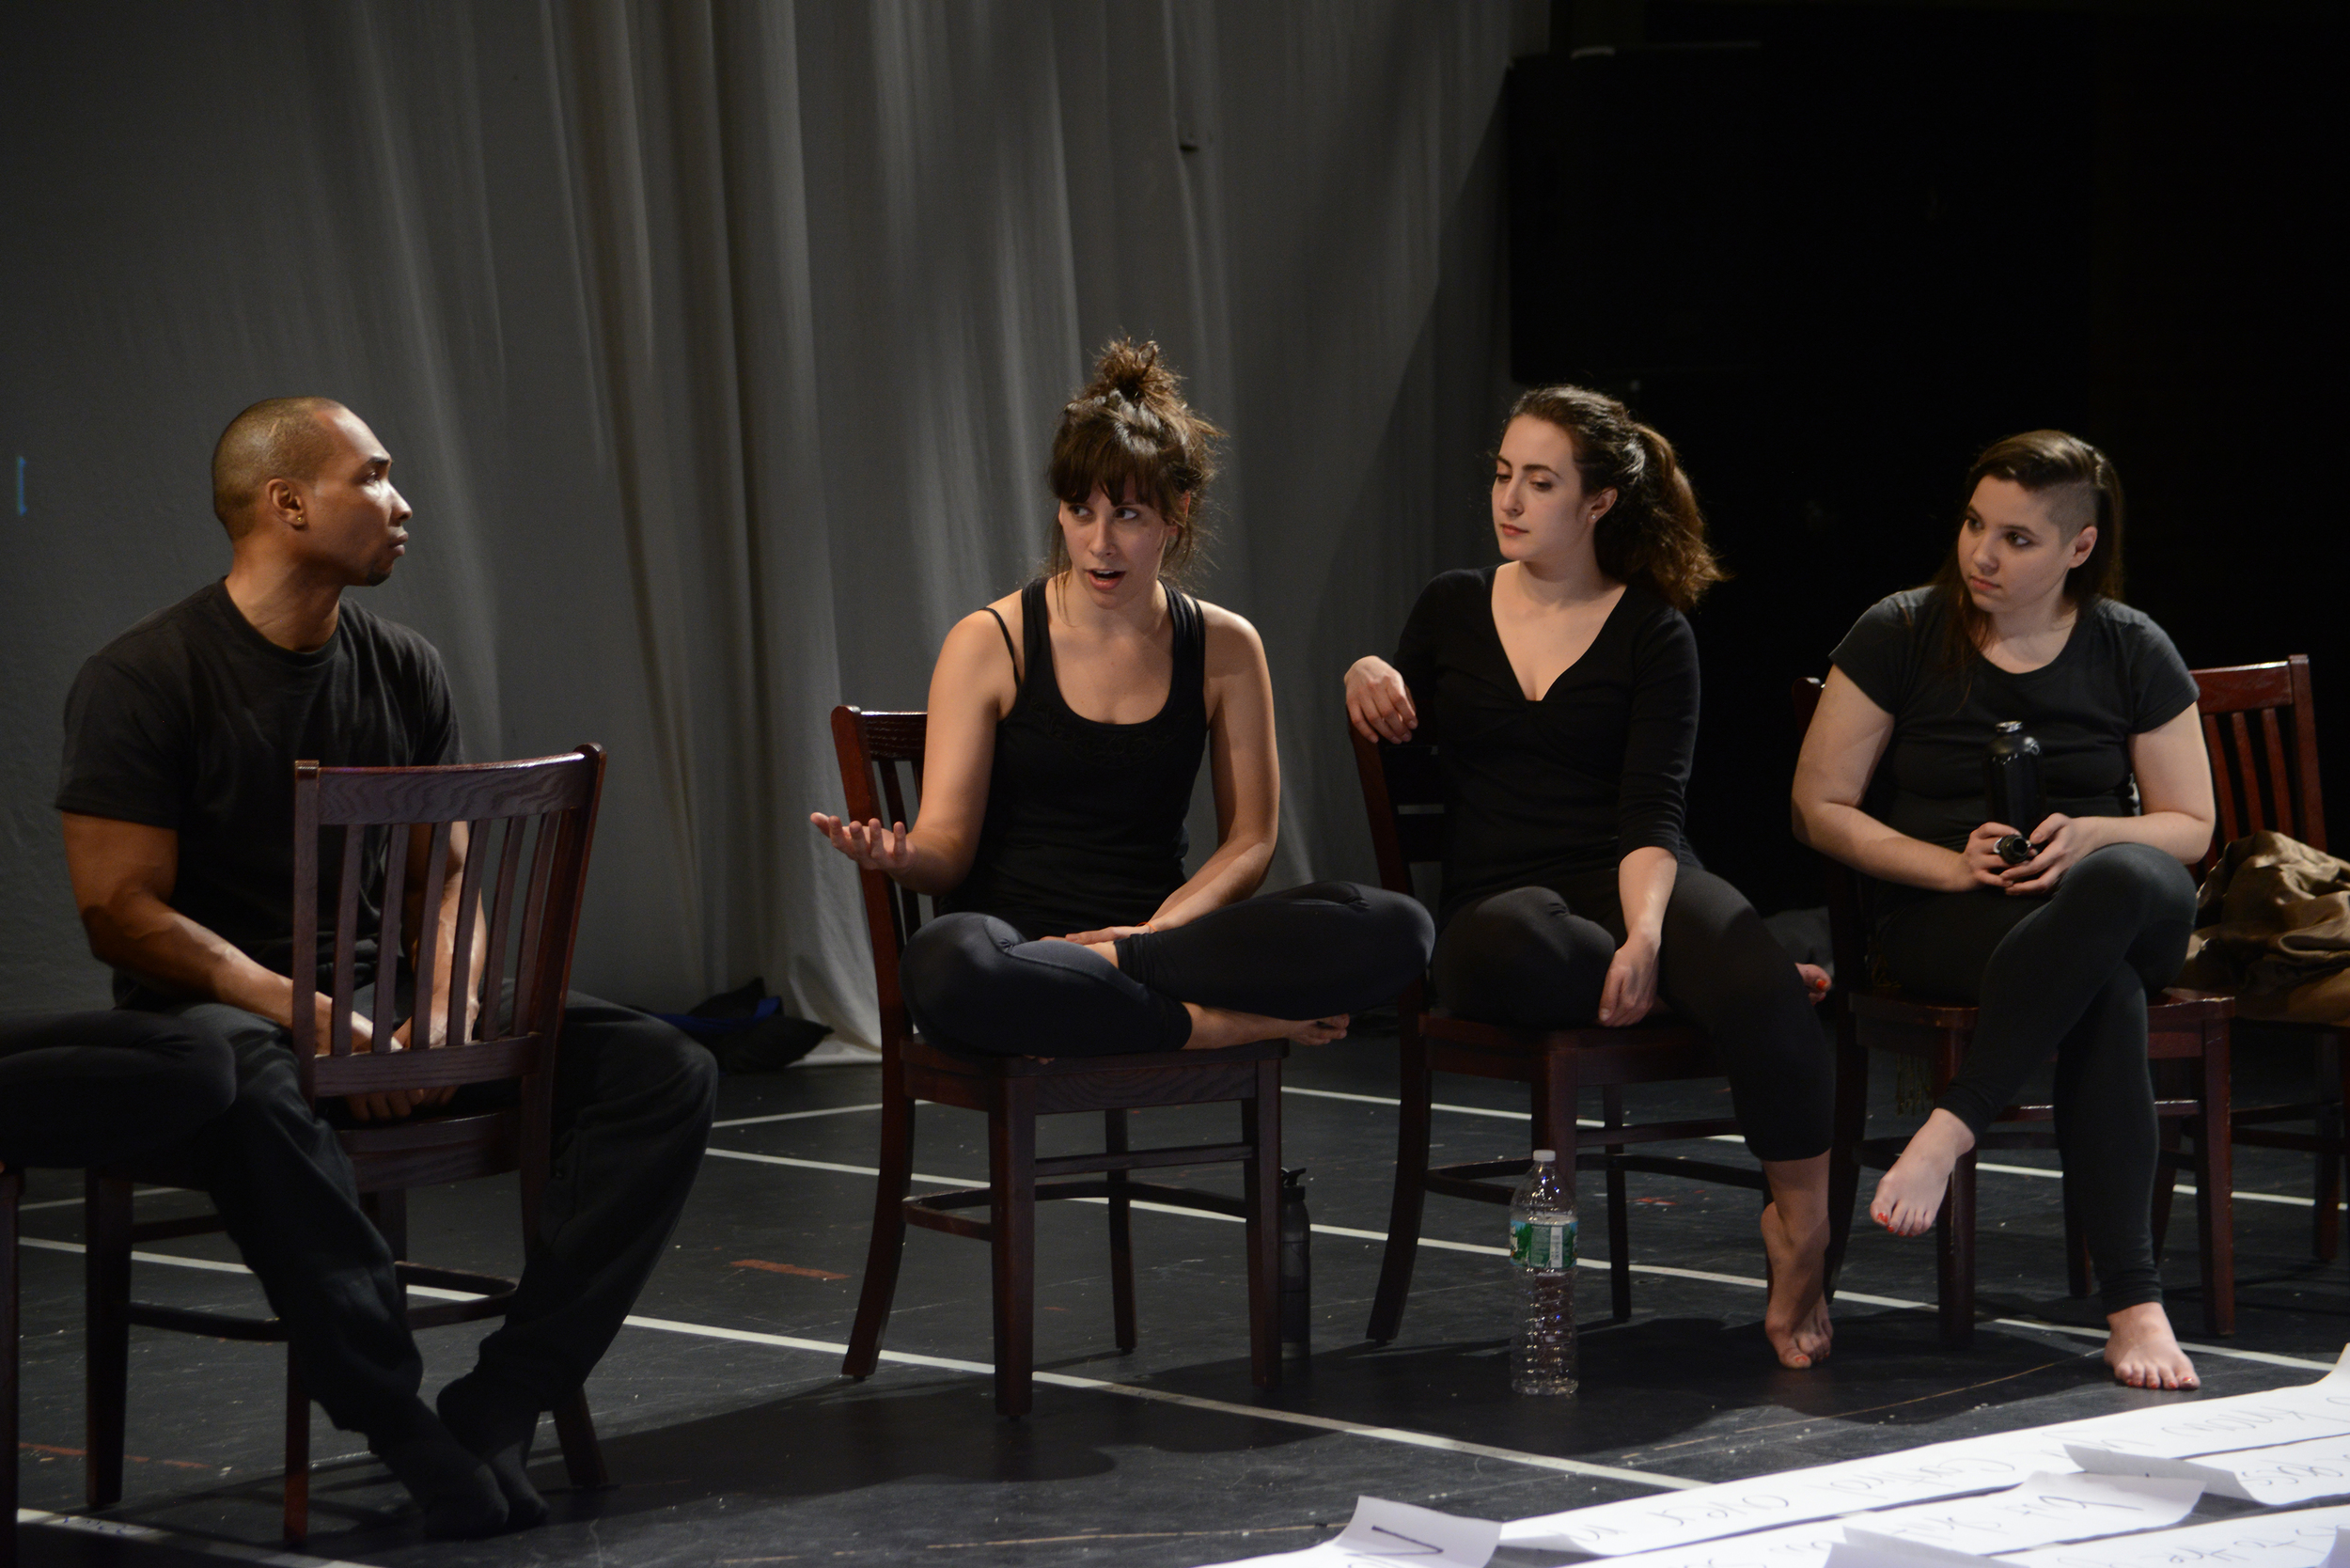 Talkback after The Reuptake Project - October 2014. Photo by Allison Stock.